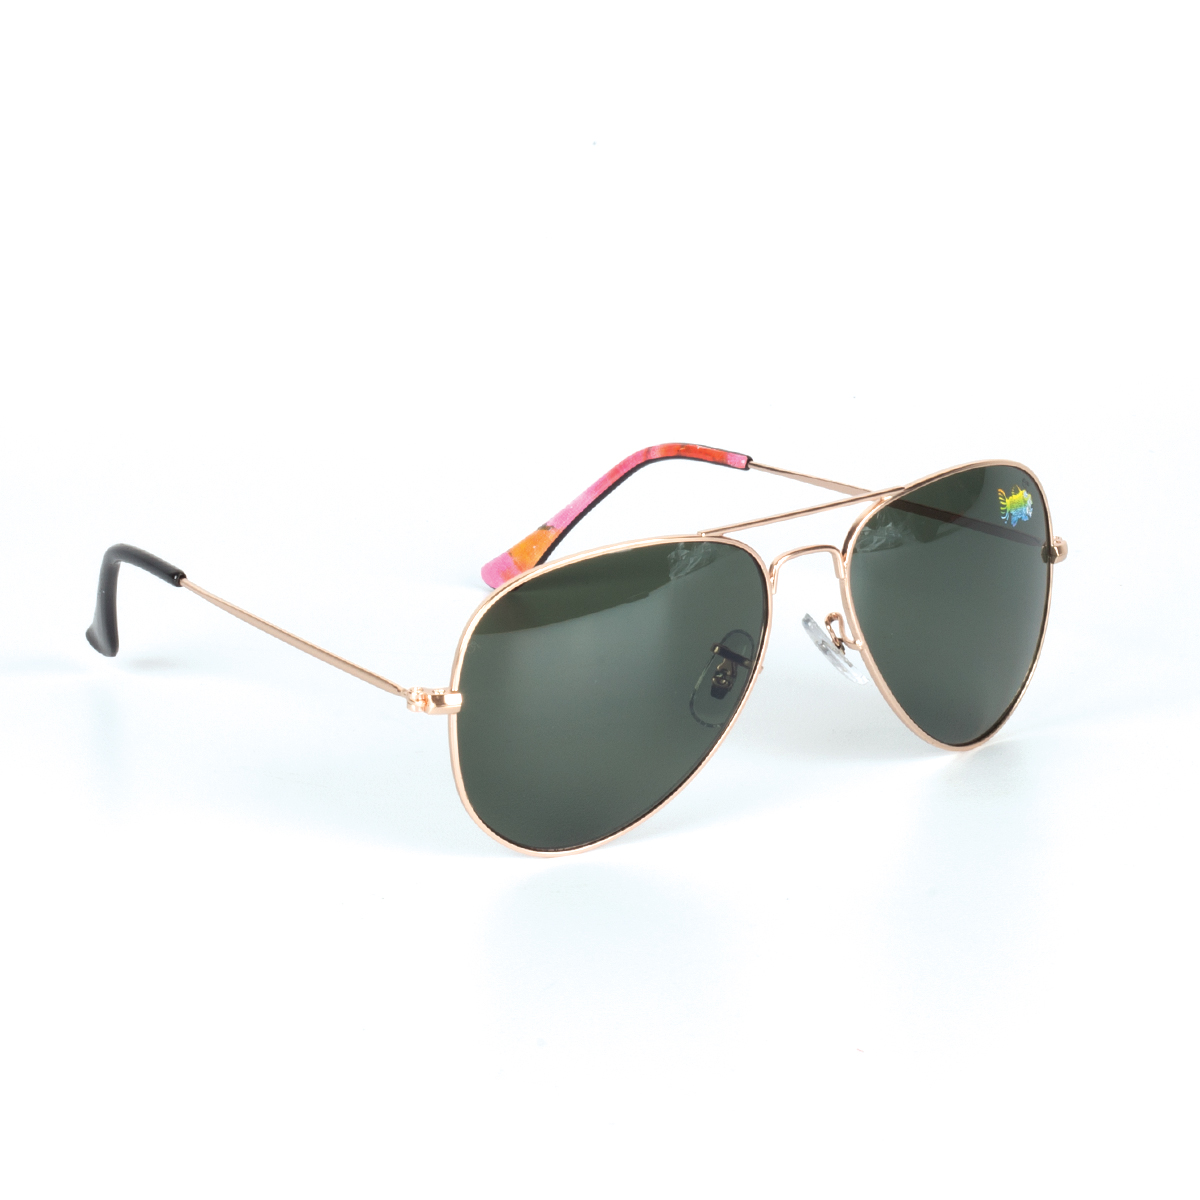 Fish Aviator Sunglasses with Case